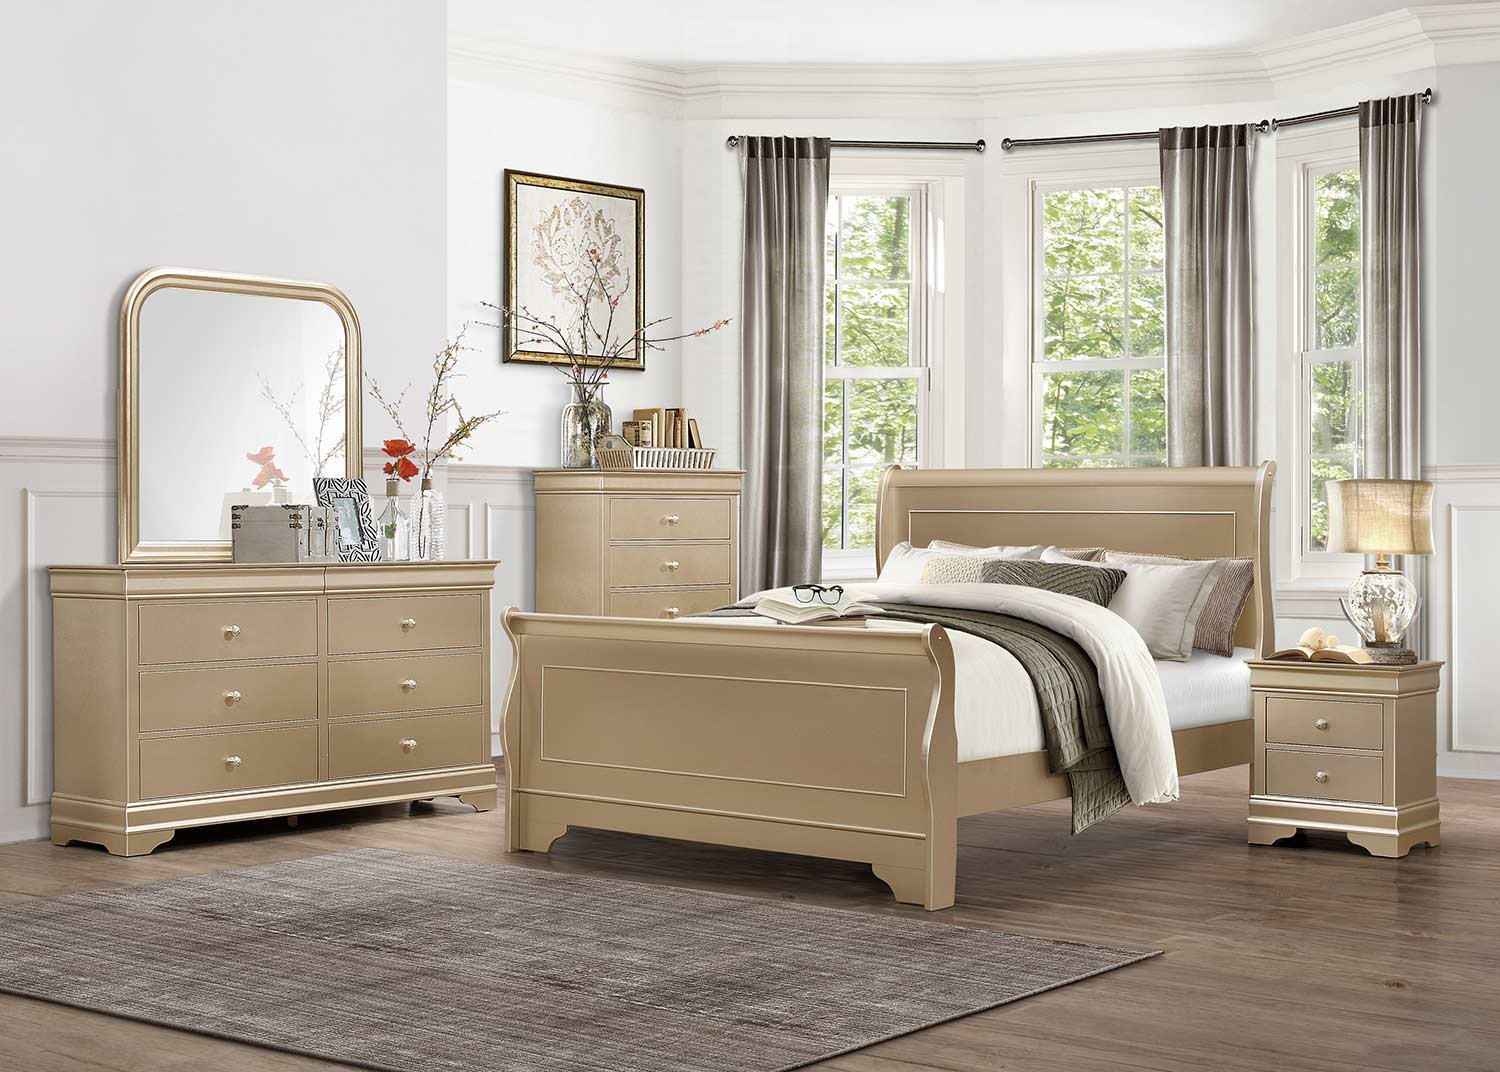 Homelegance Abbeville Bedroom Set - Gold